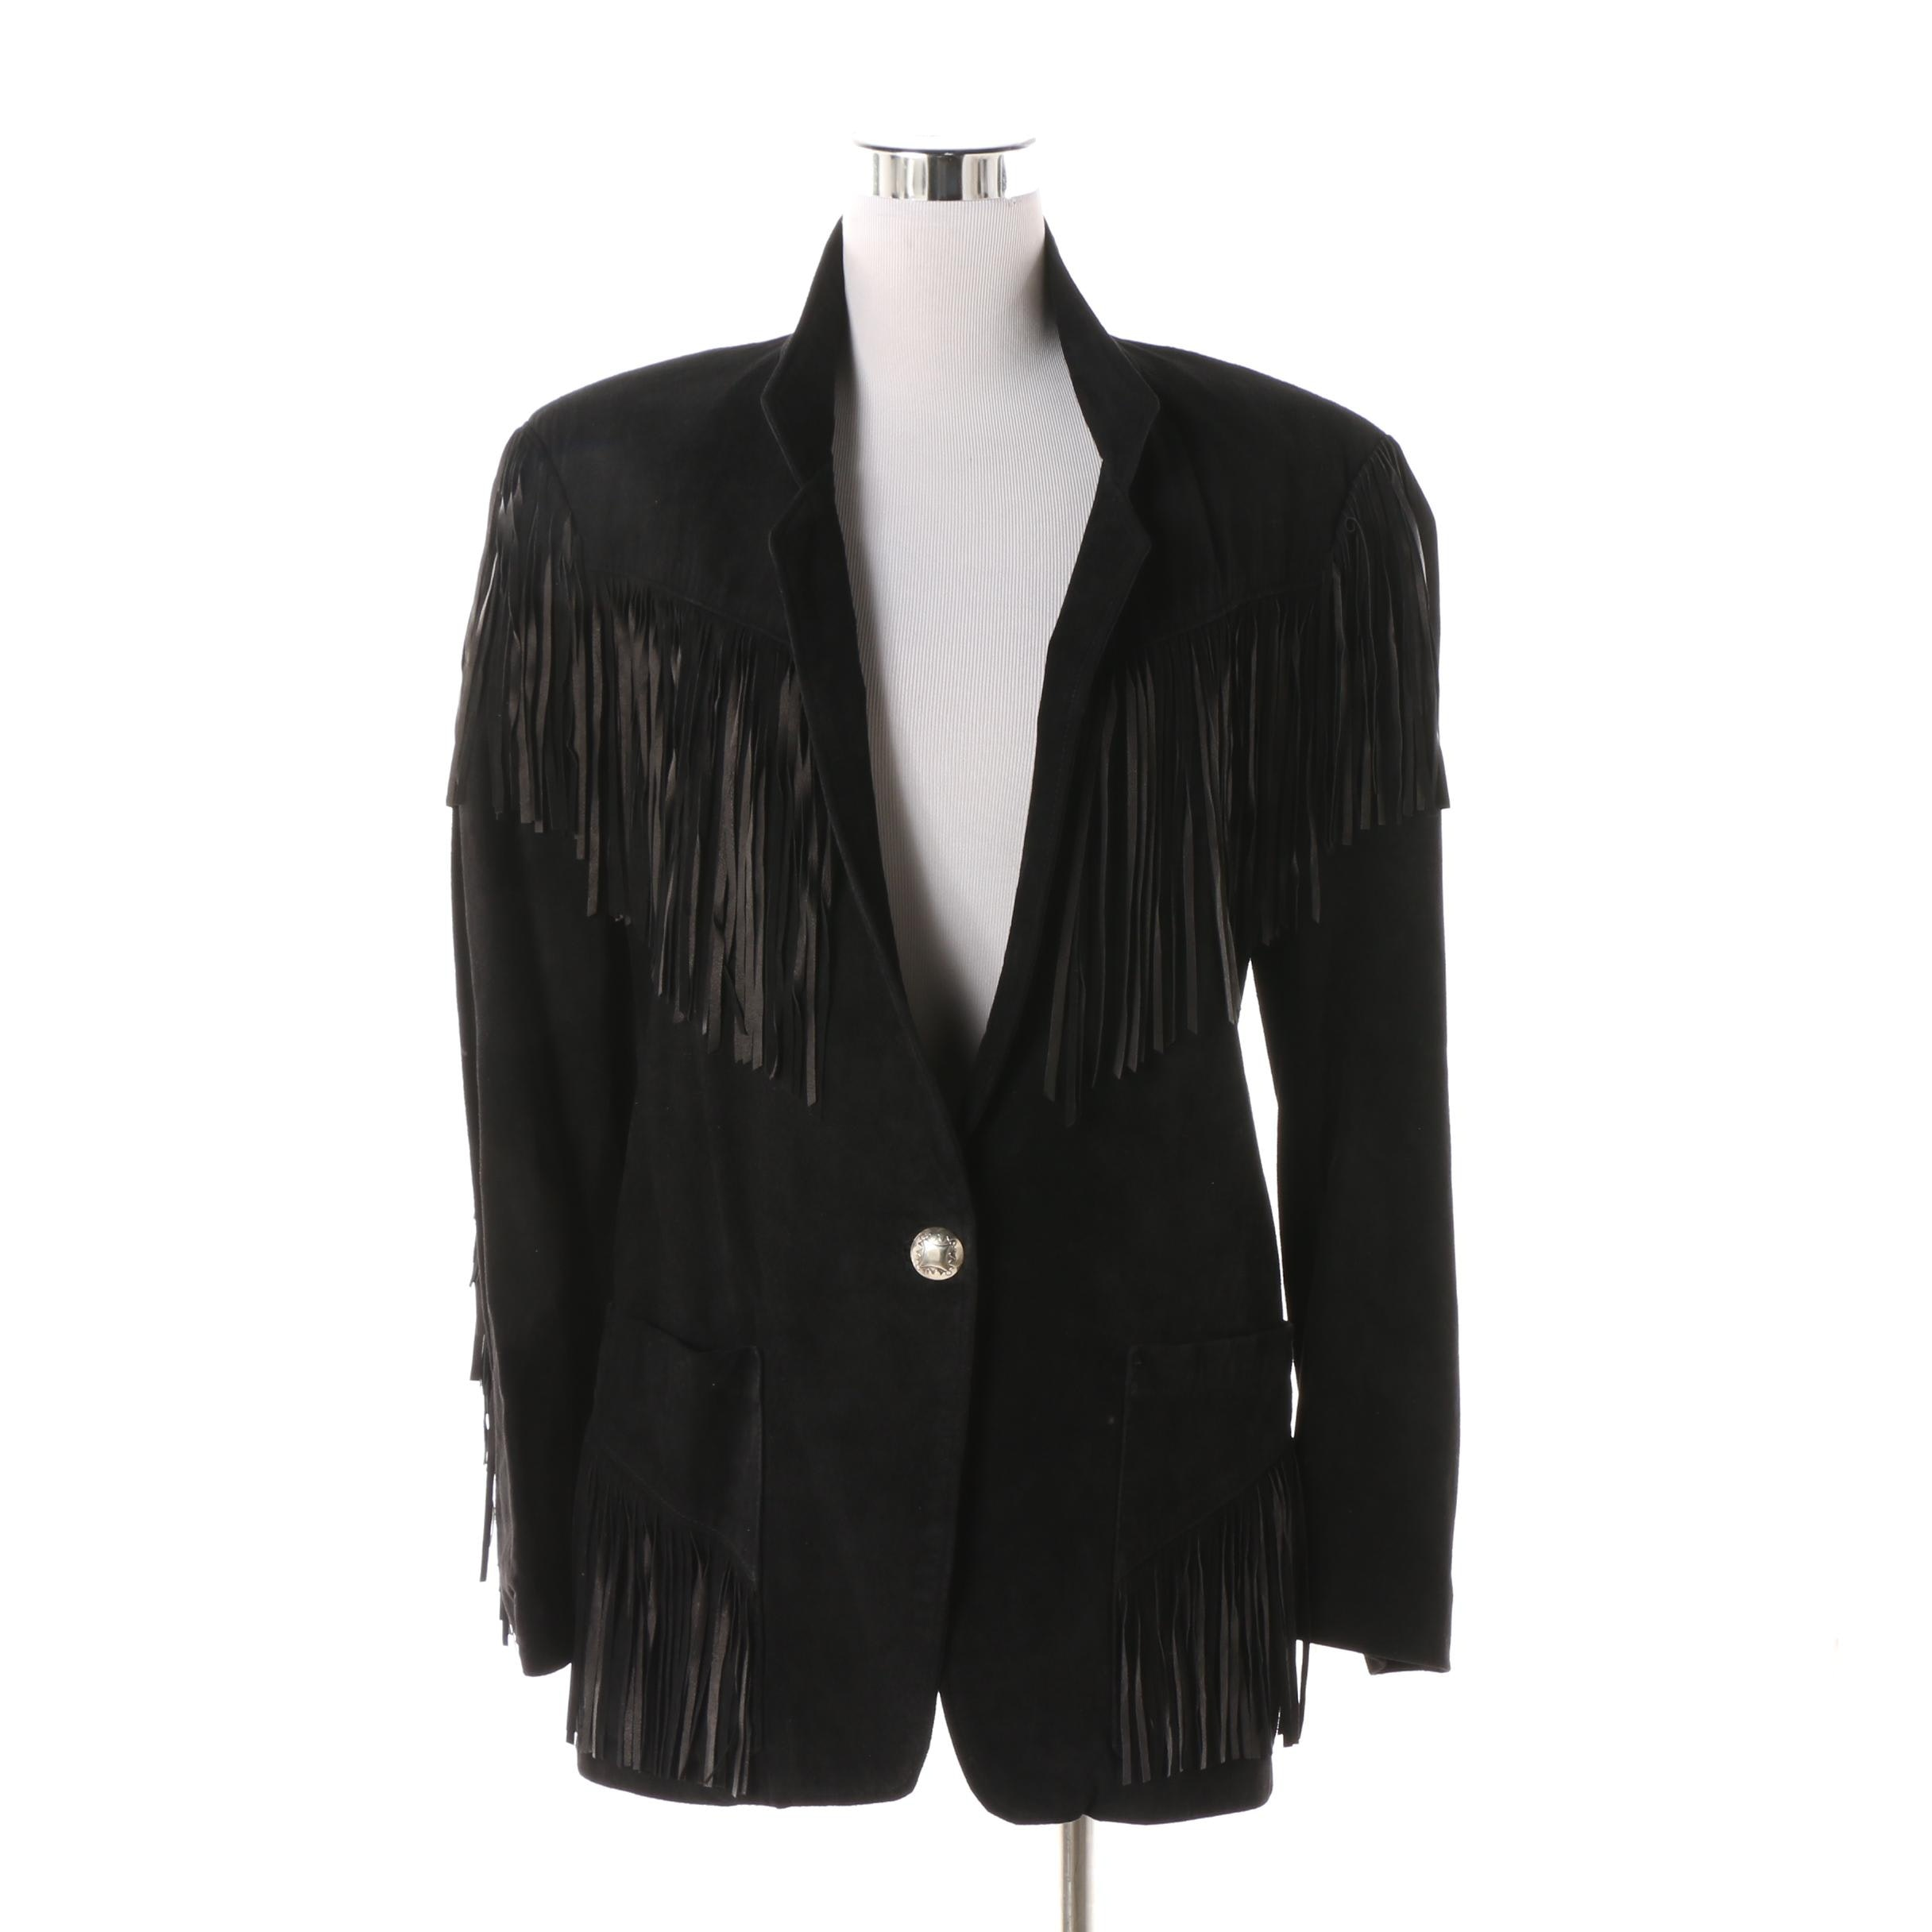 Women's Patricia Wolfe Black Suede Fringed Jacket, Made in Texas